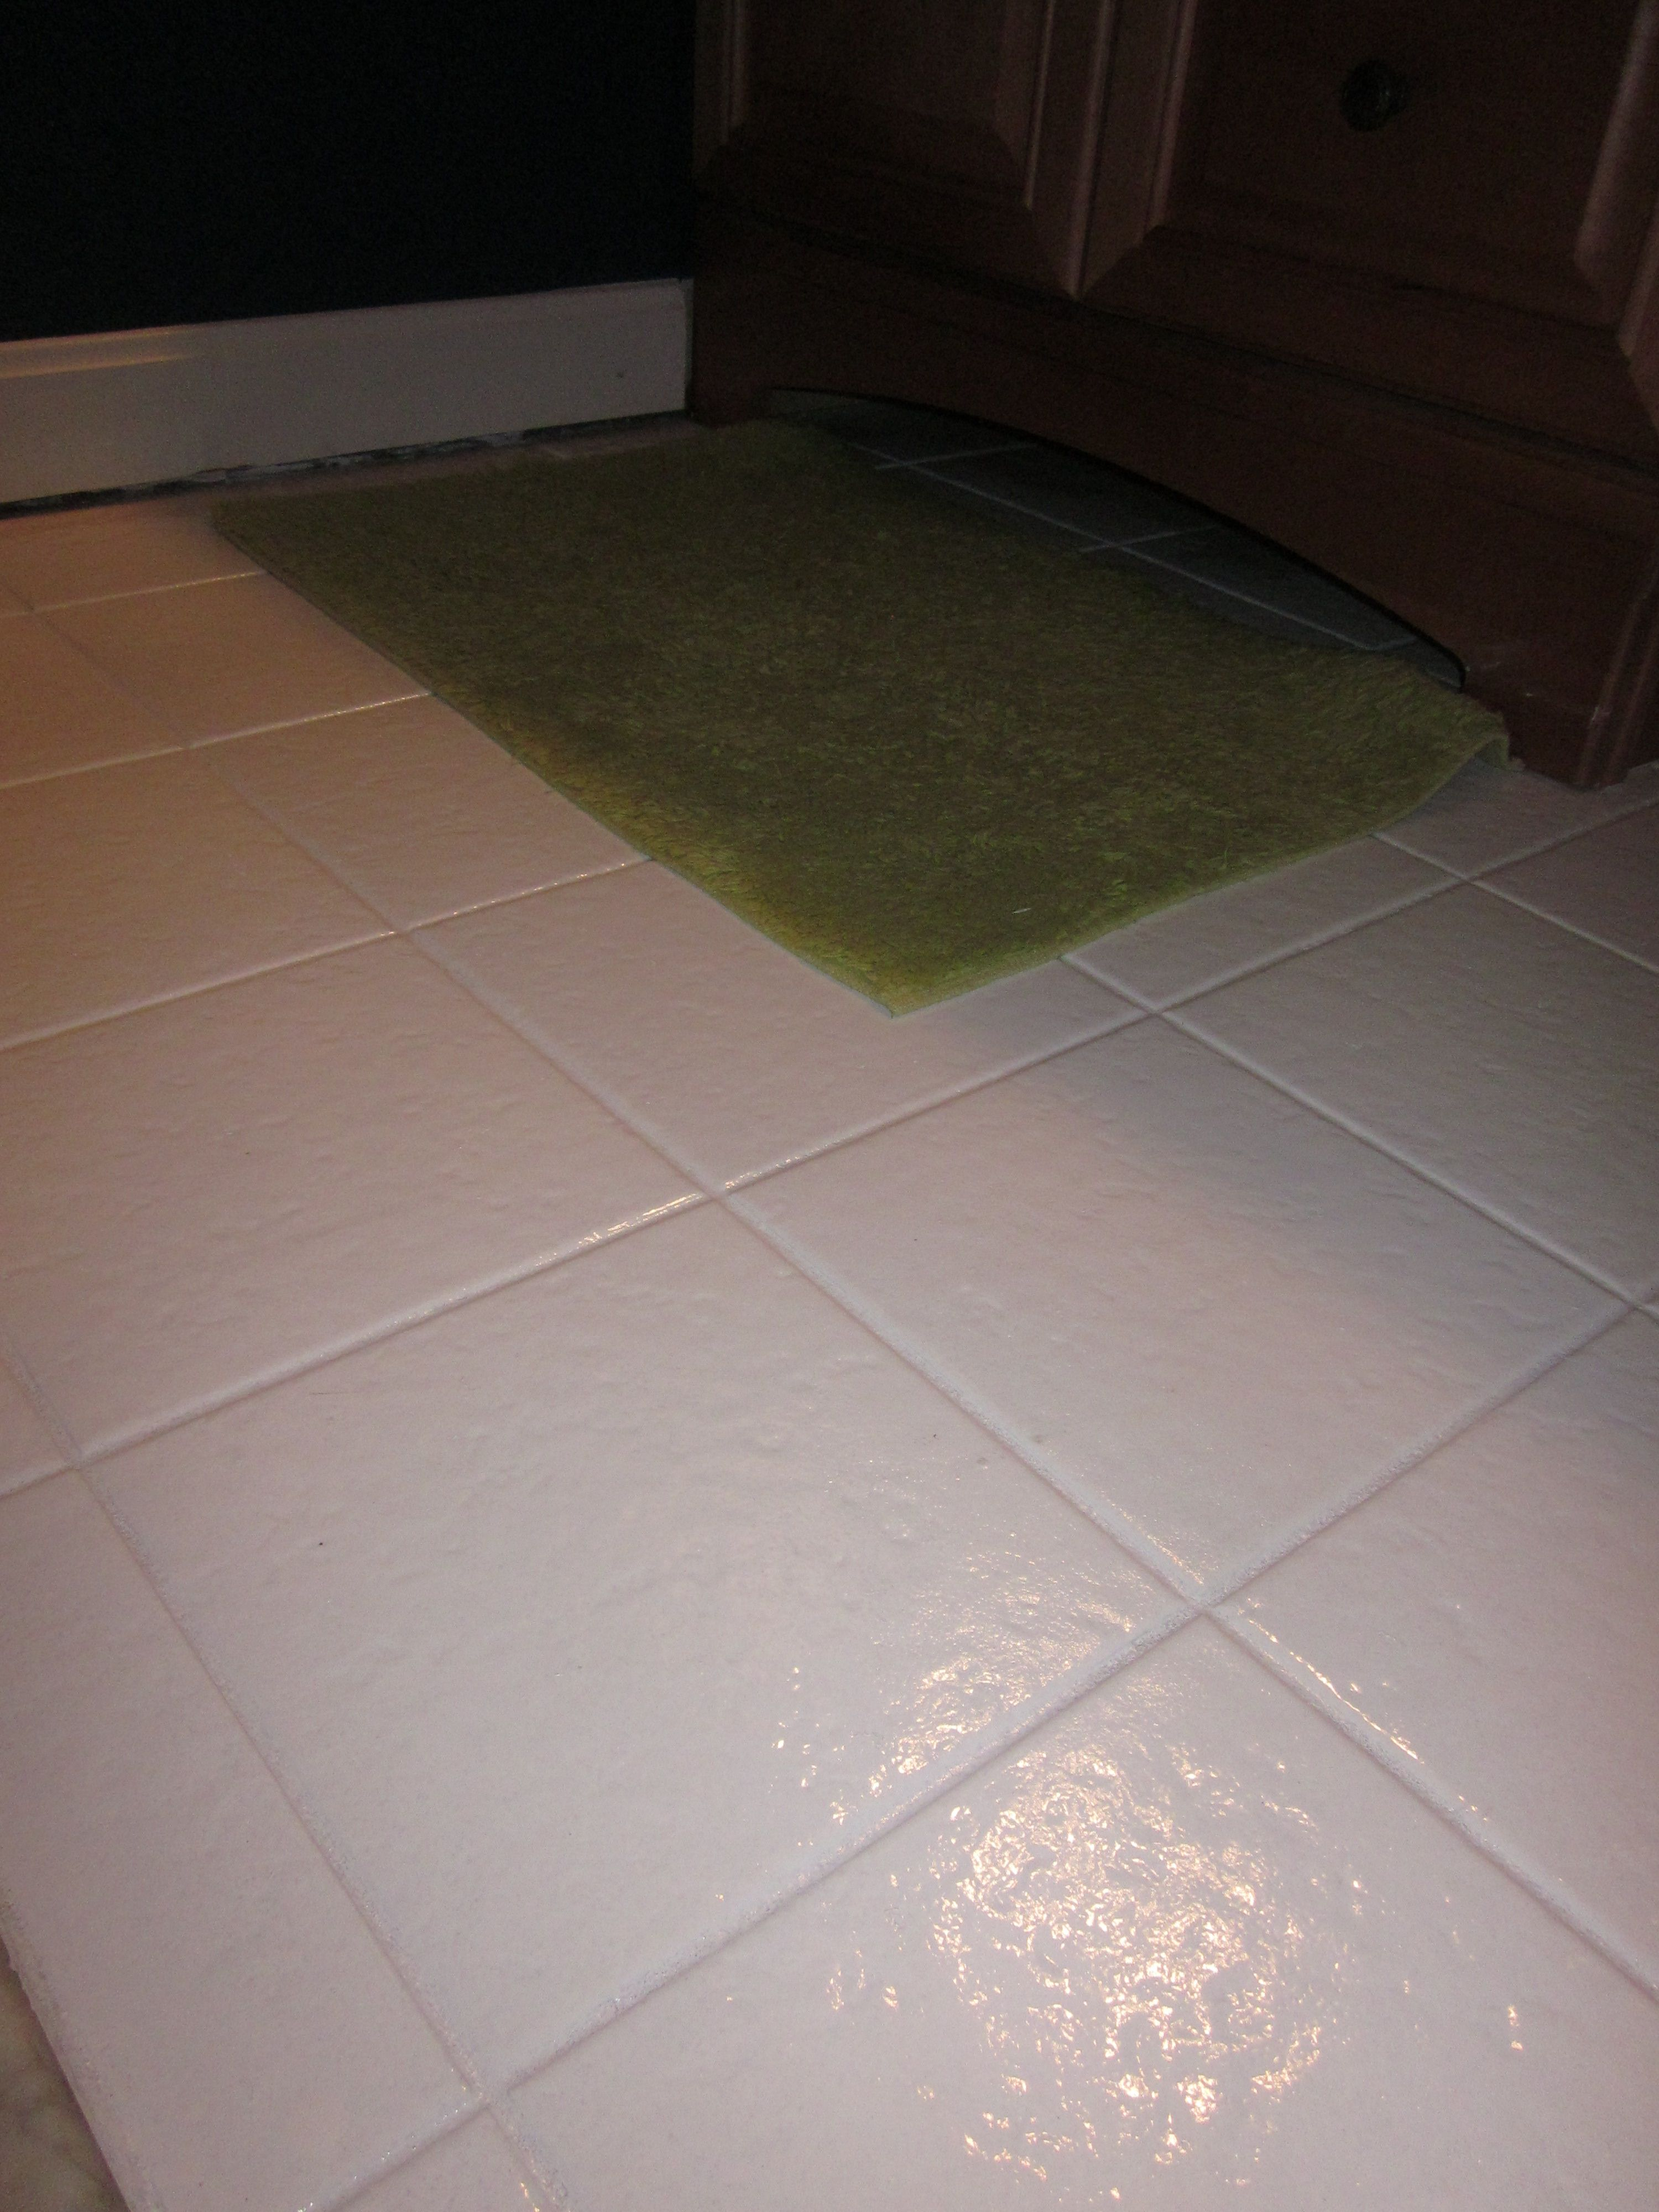 My first post painted tile tile flooring painted tiles and house my first post painted tile painting tile floorspaint dailygadgetfo Choice Image